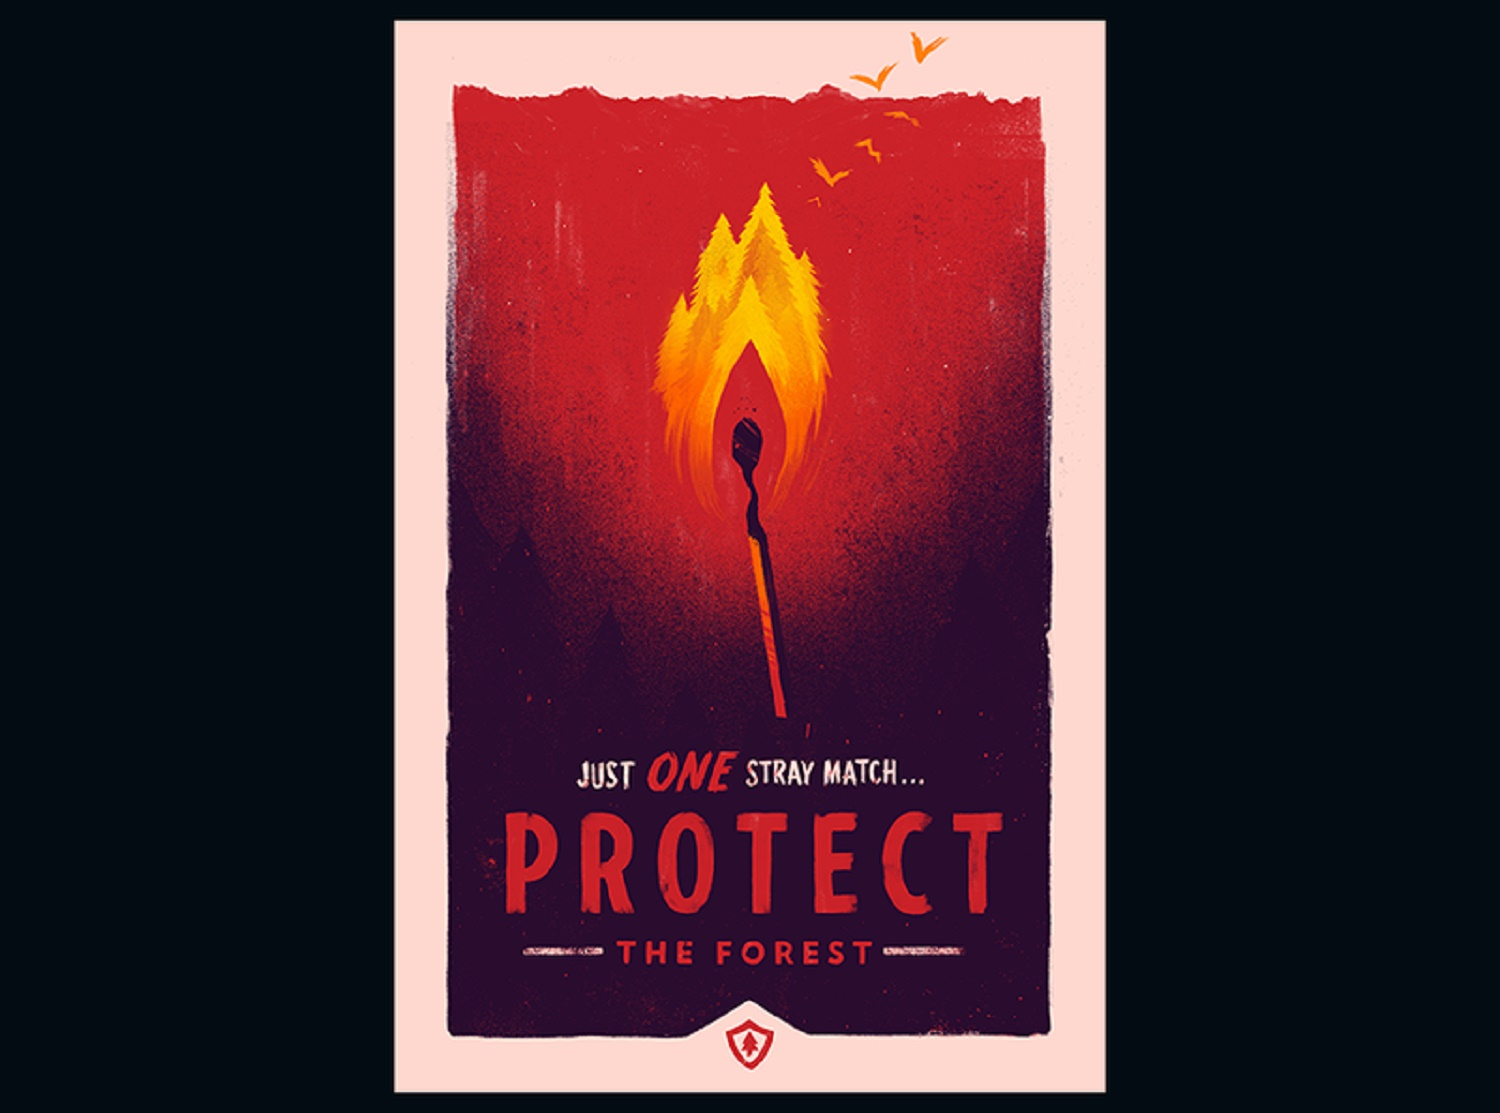 poster_protect_2_1024x1024.0